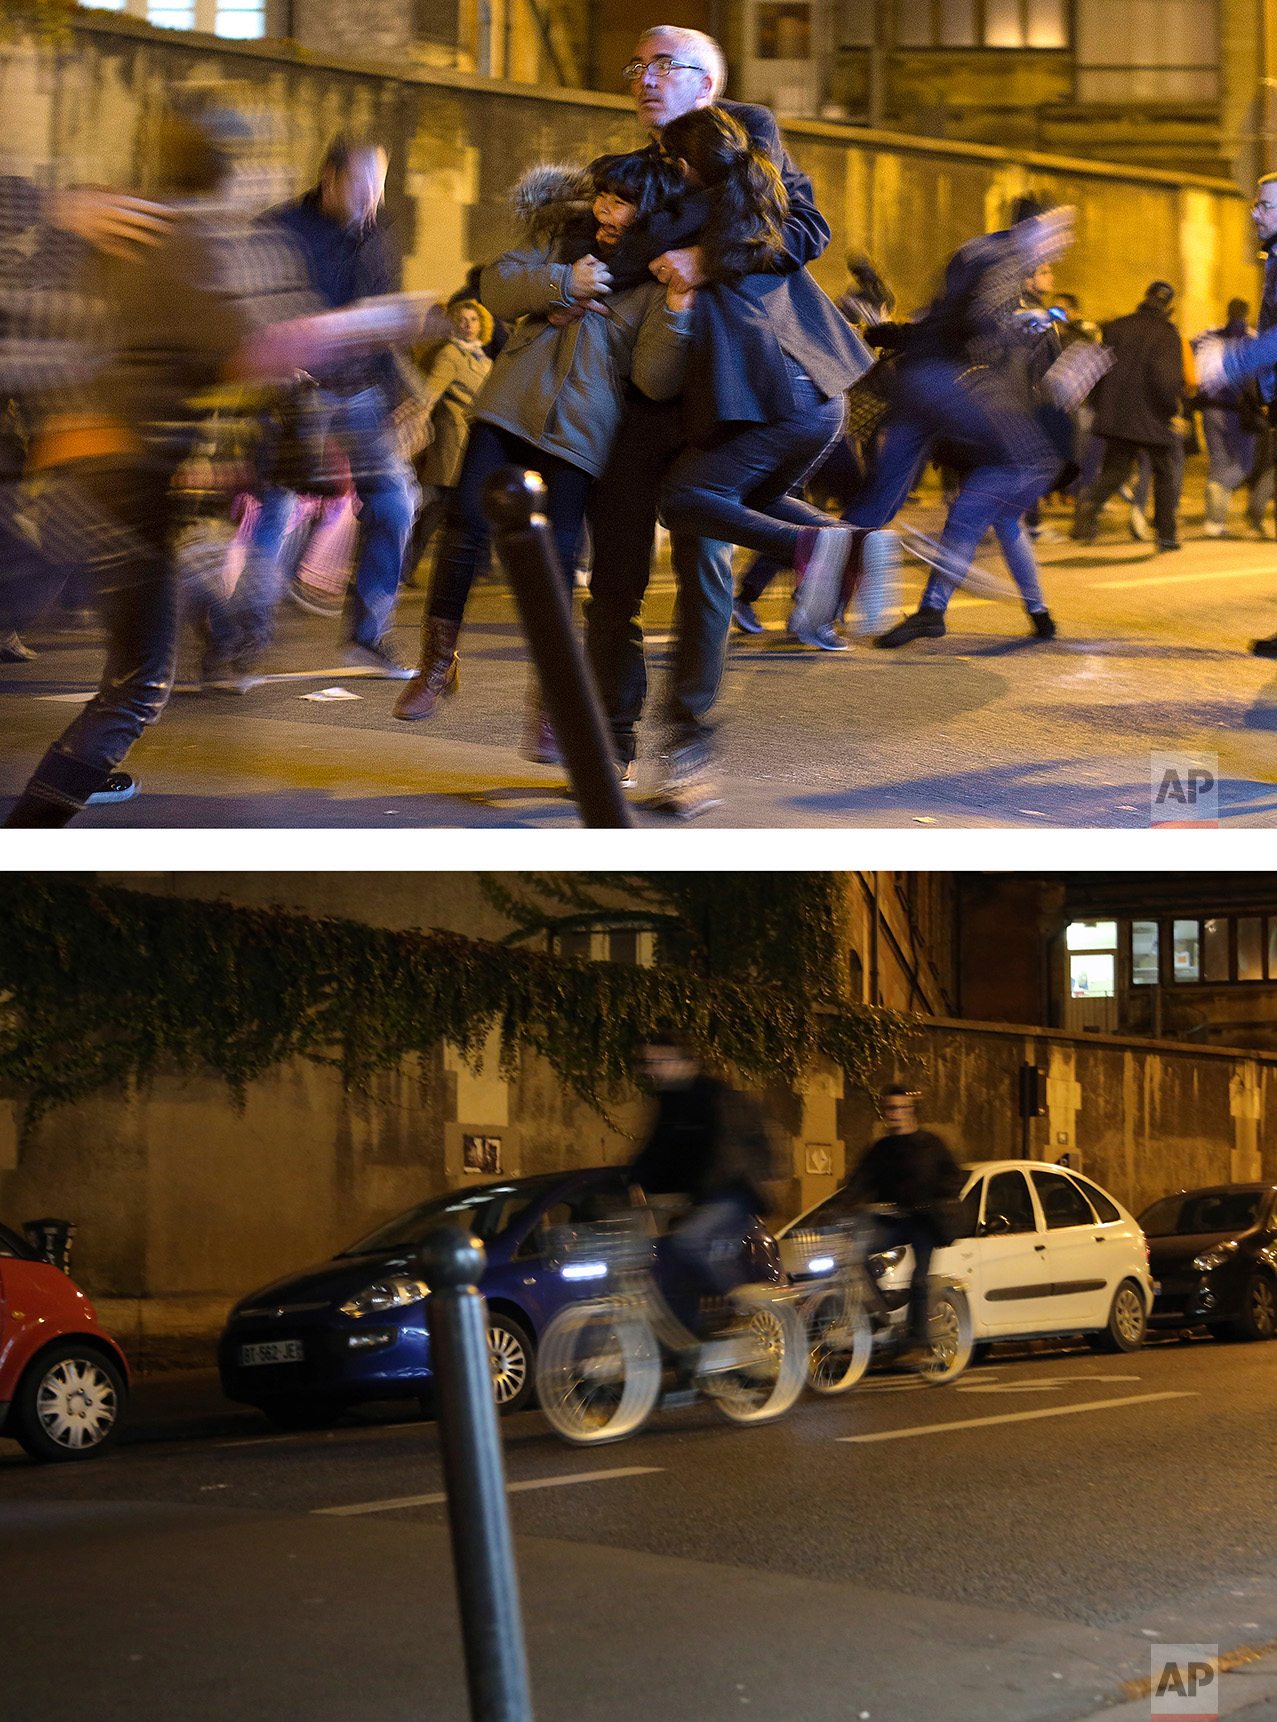 This combination of two photos shows a Sunday, Nov. 15, 2015 photo, top, of a man carrying two children after panic broke out among mourners who payed their respect at the attack sites at restaurant Le Petit Cambodge (Little Cambodia) and the Carillon Hotel in Paris, and people cycling along the road, bottom, on Tuesday Nov. 8, 2016. (AP Photo/Peter Dejong, Thibault Camus)